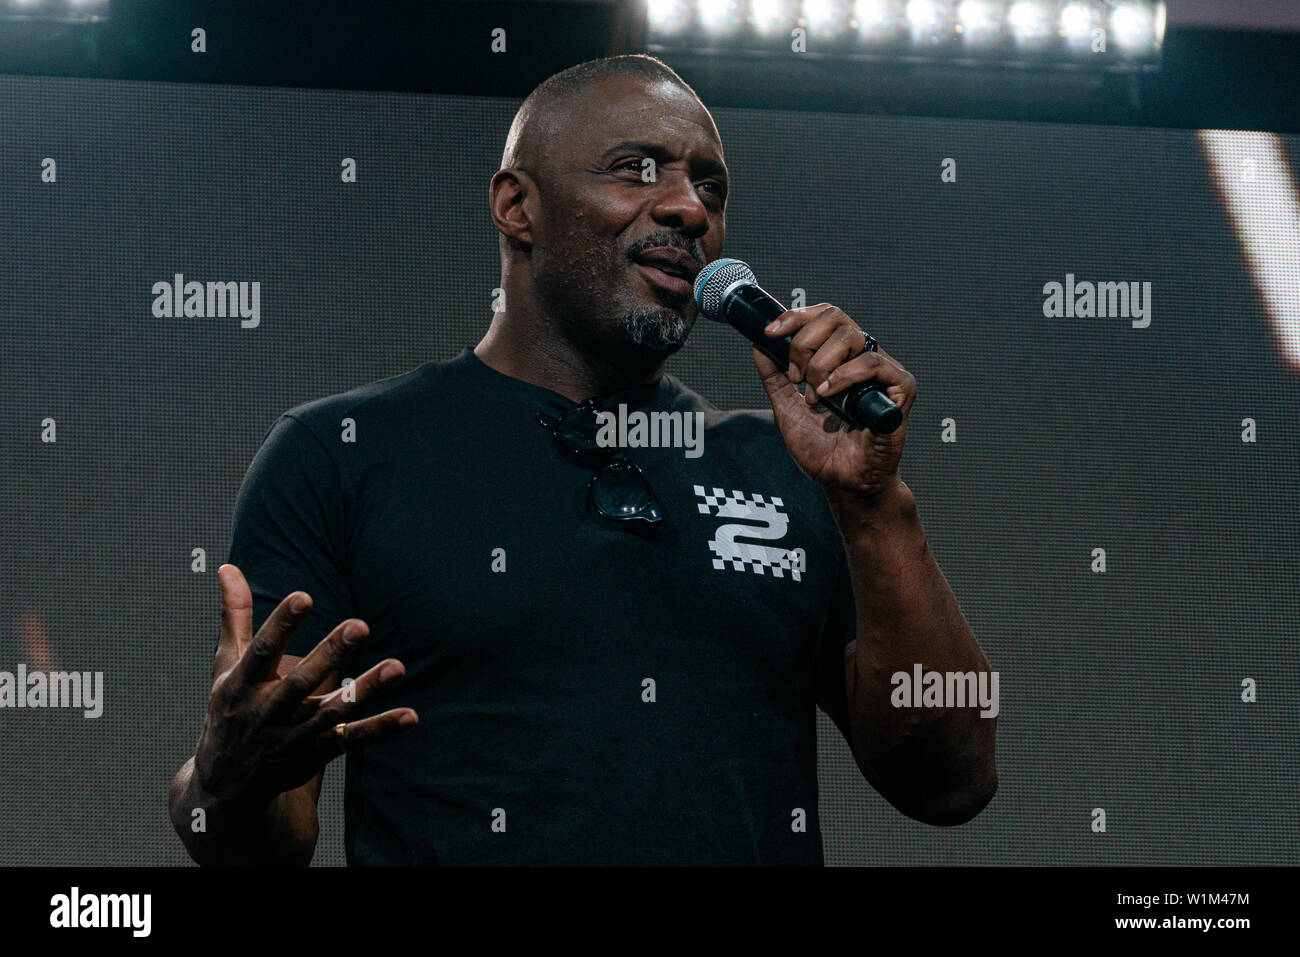 COLOGNE, GERMANY - JUN 28th 2019: Idris Elba (*1972, English actor, DJ and recording artist - The Fast & The Furious) , world premiere of the final movie trailer for Fast & Furious Hobbs & Shaw at CCXP Cologne Stock Photo